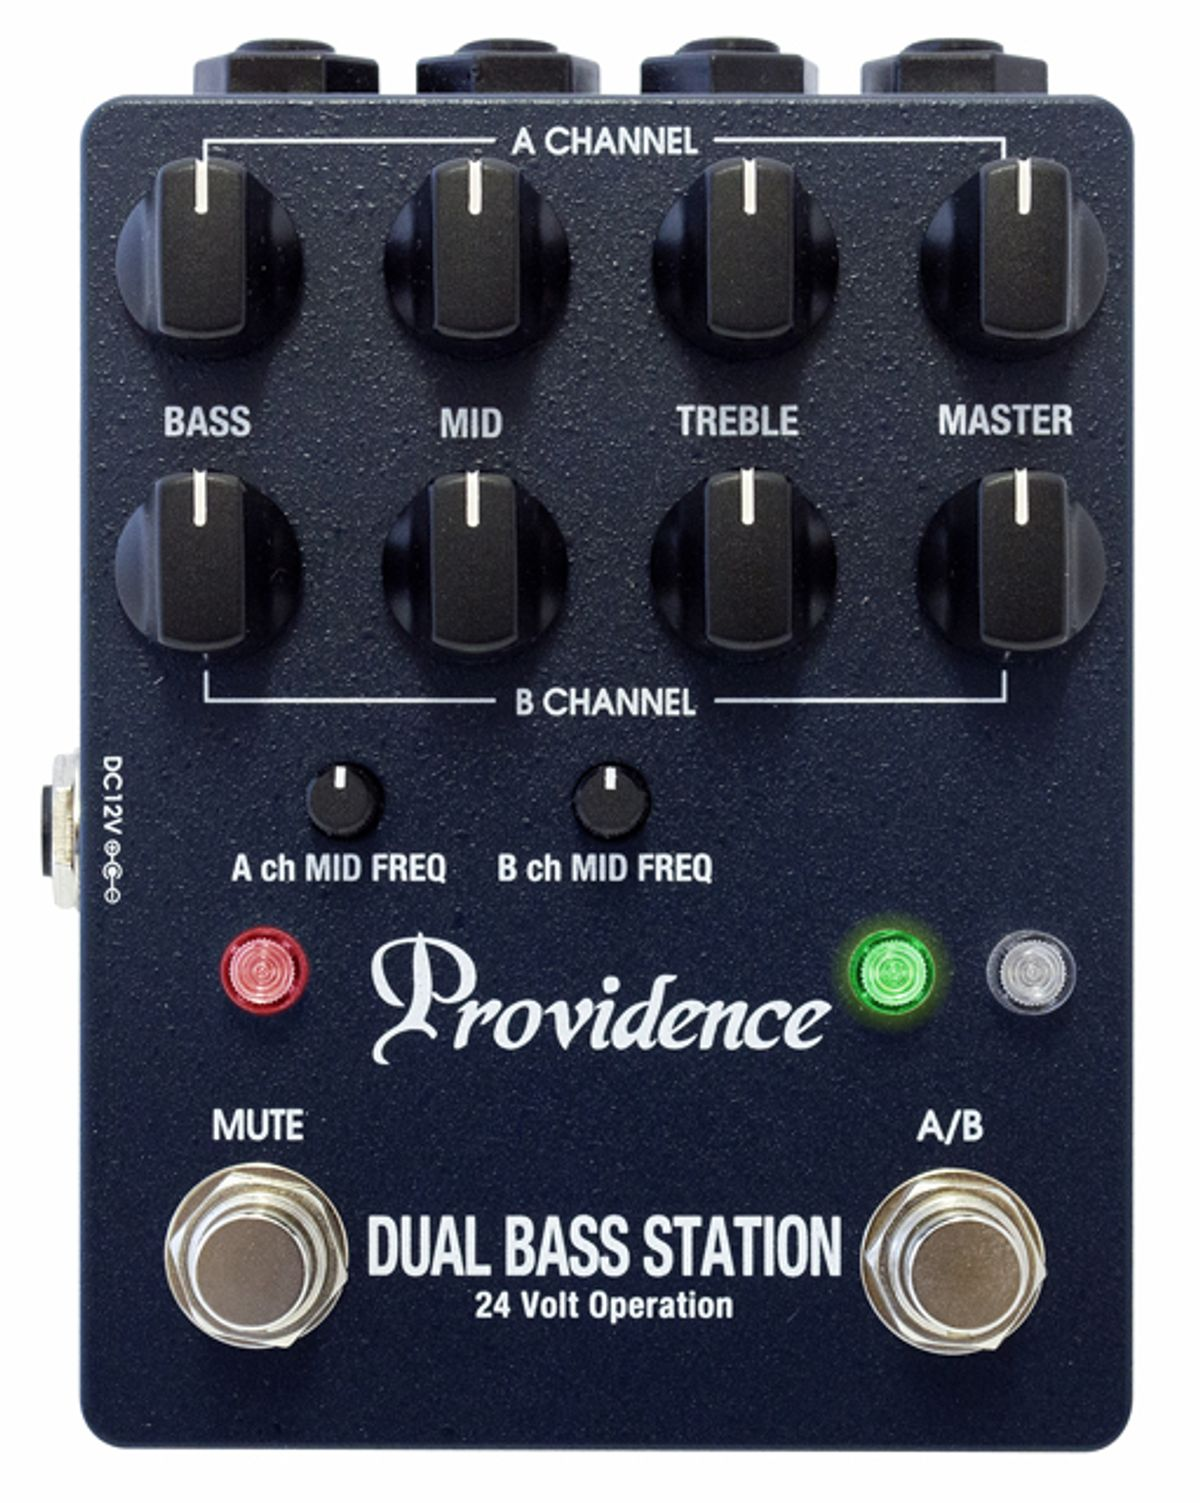 Providence Introduces the Dual Bass Station Preamp